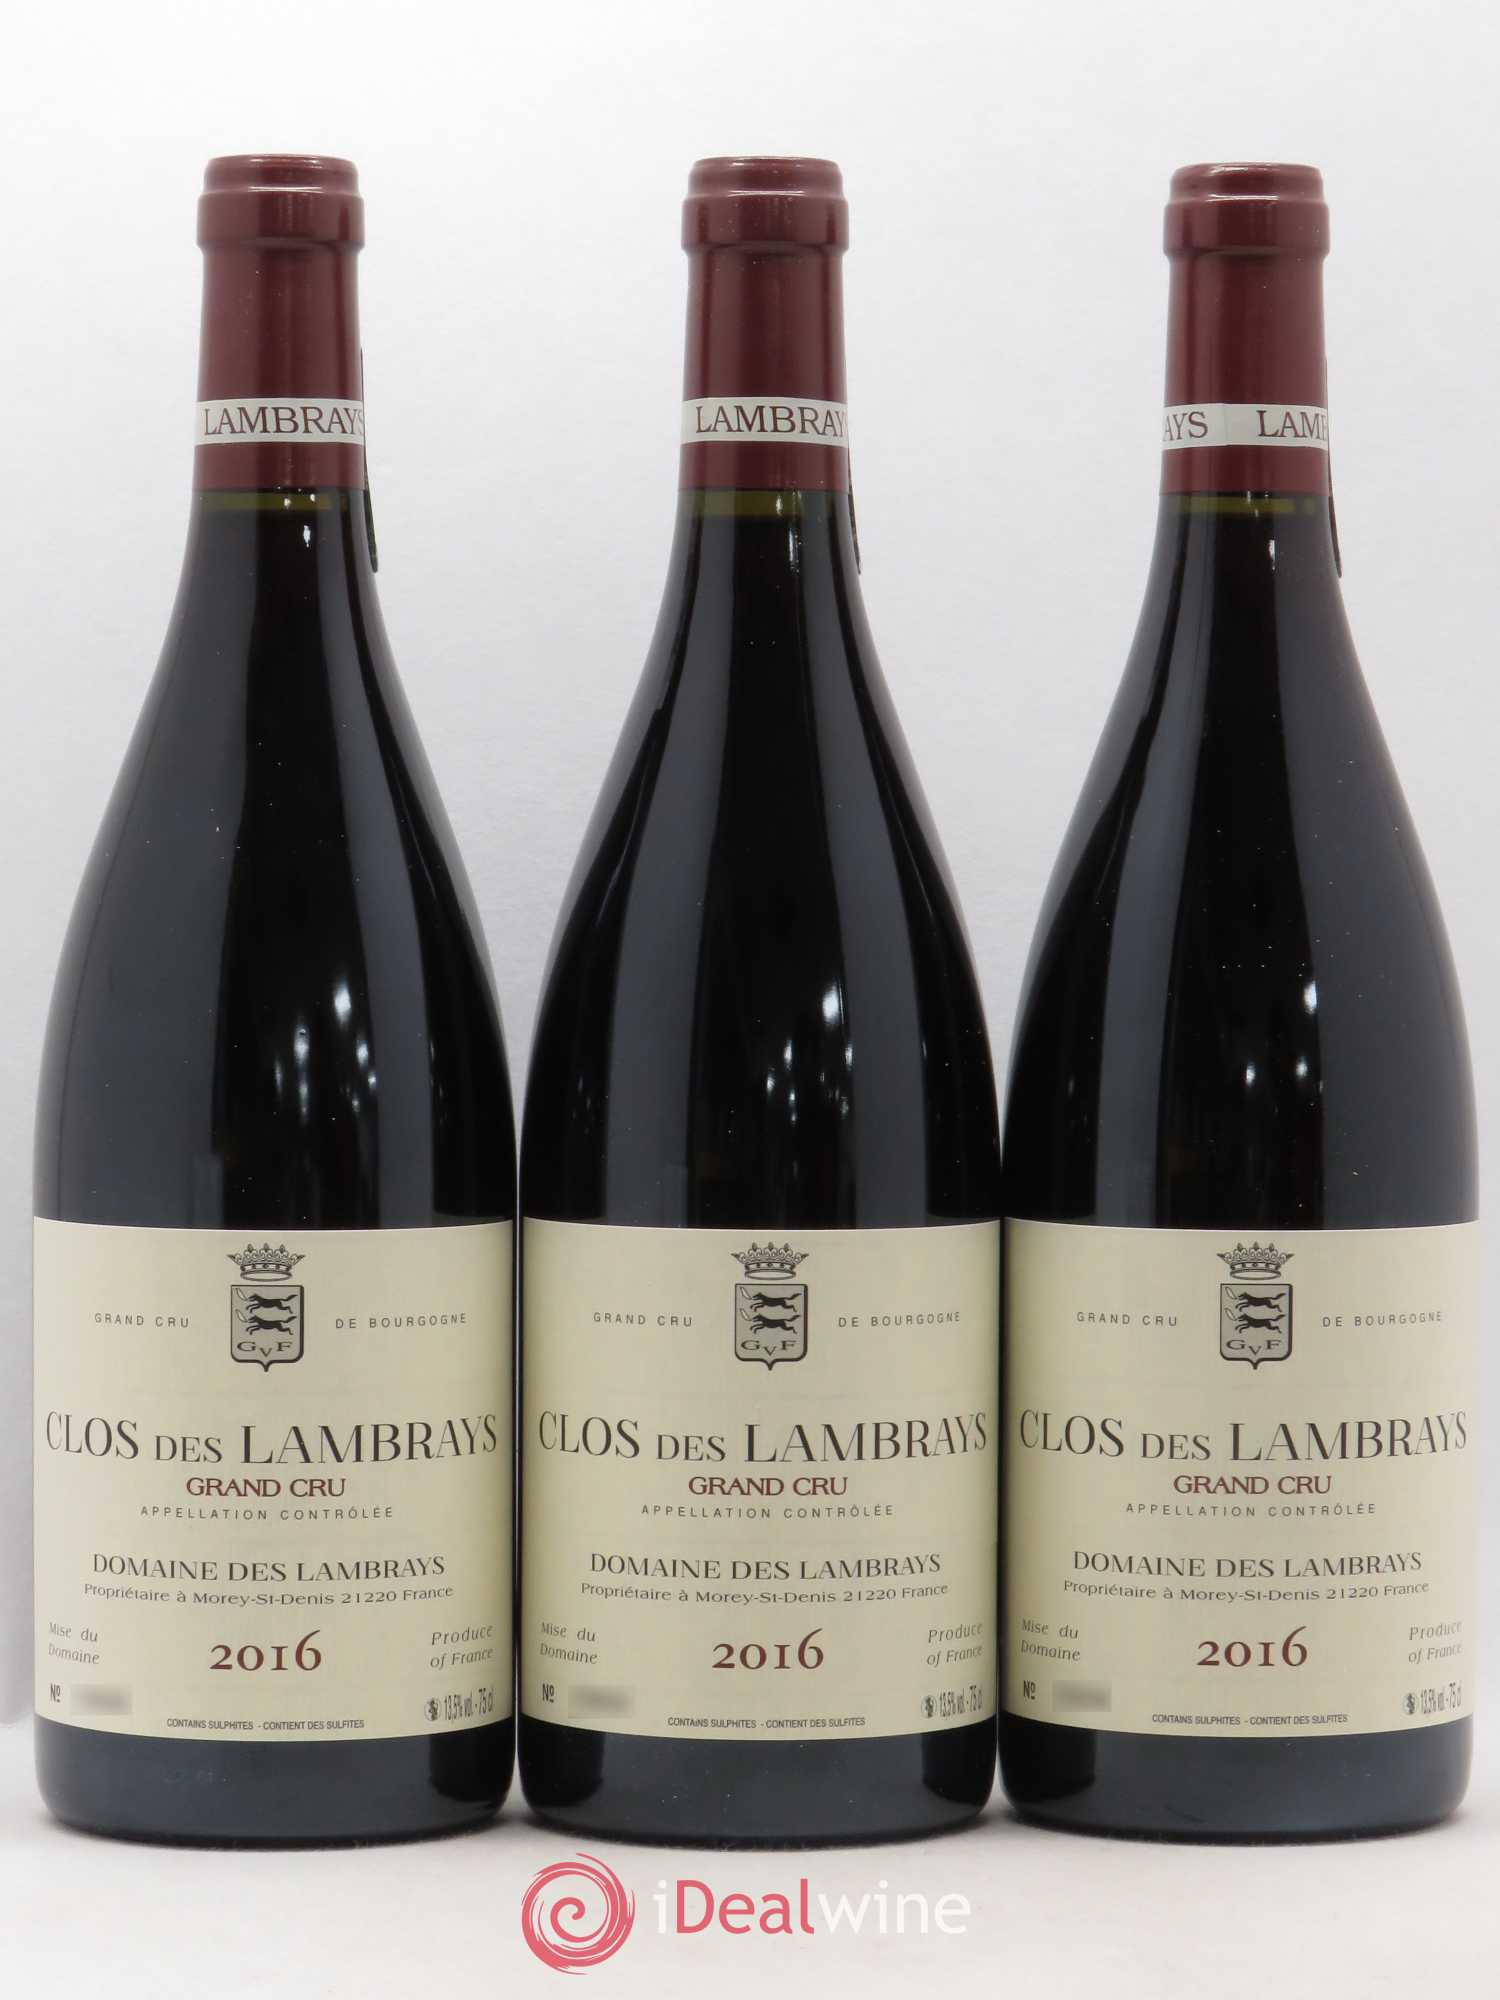 Clos des Lambrays Grand Cru Domaine des Lambrays  2016 - Lot of 3 Bottles